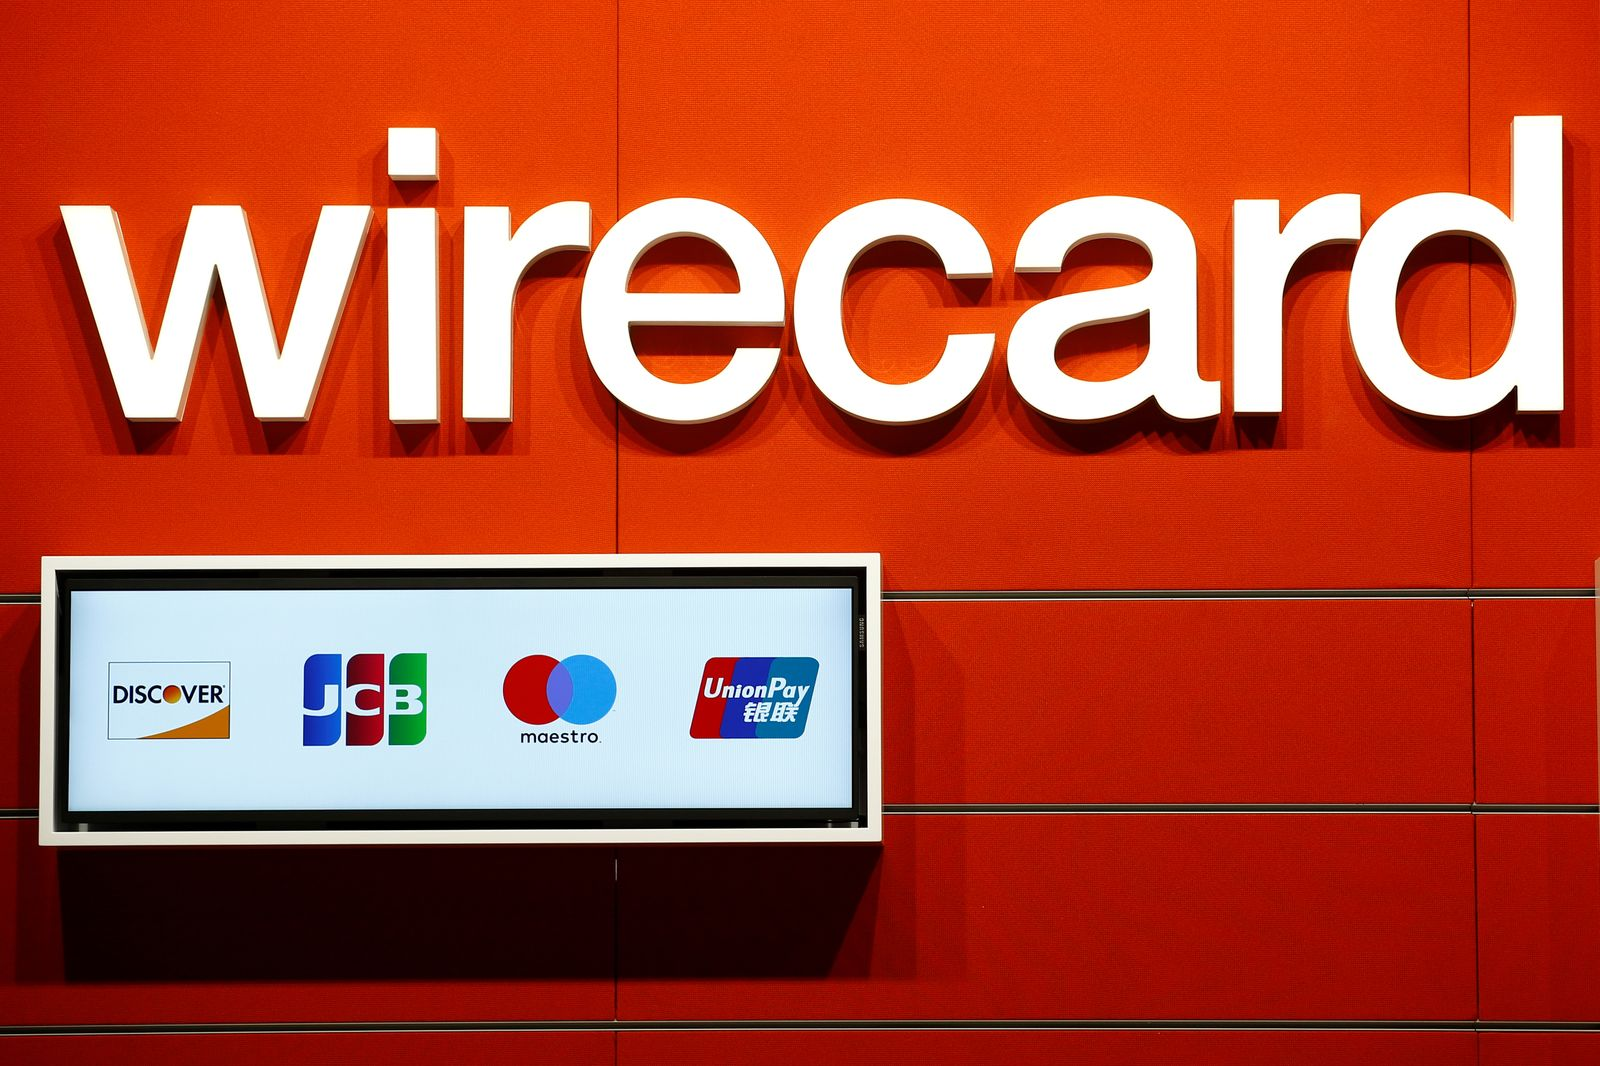 logo of Wirecard